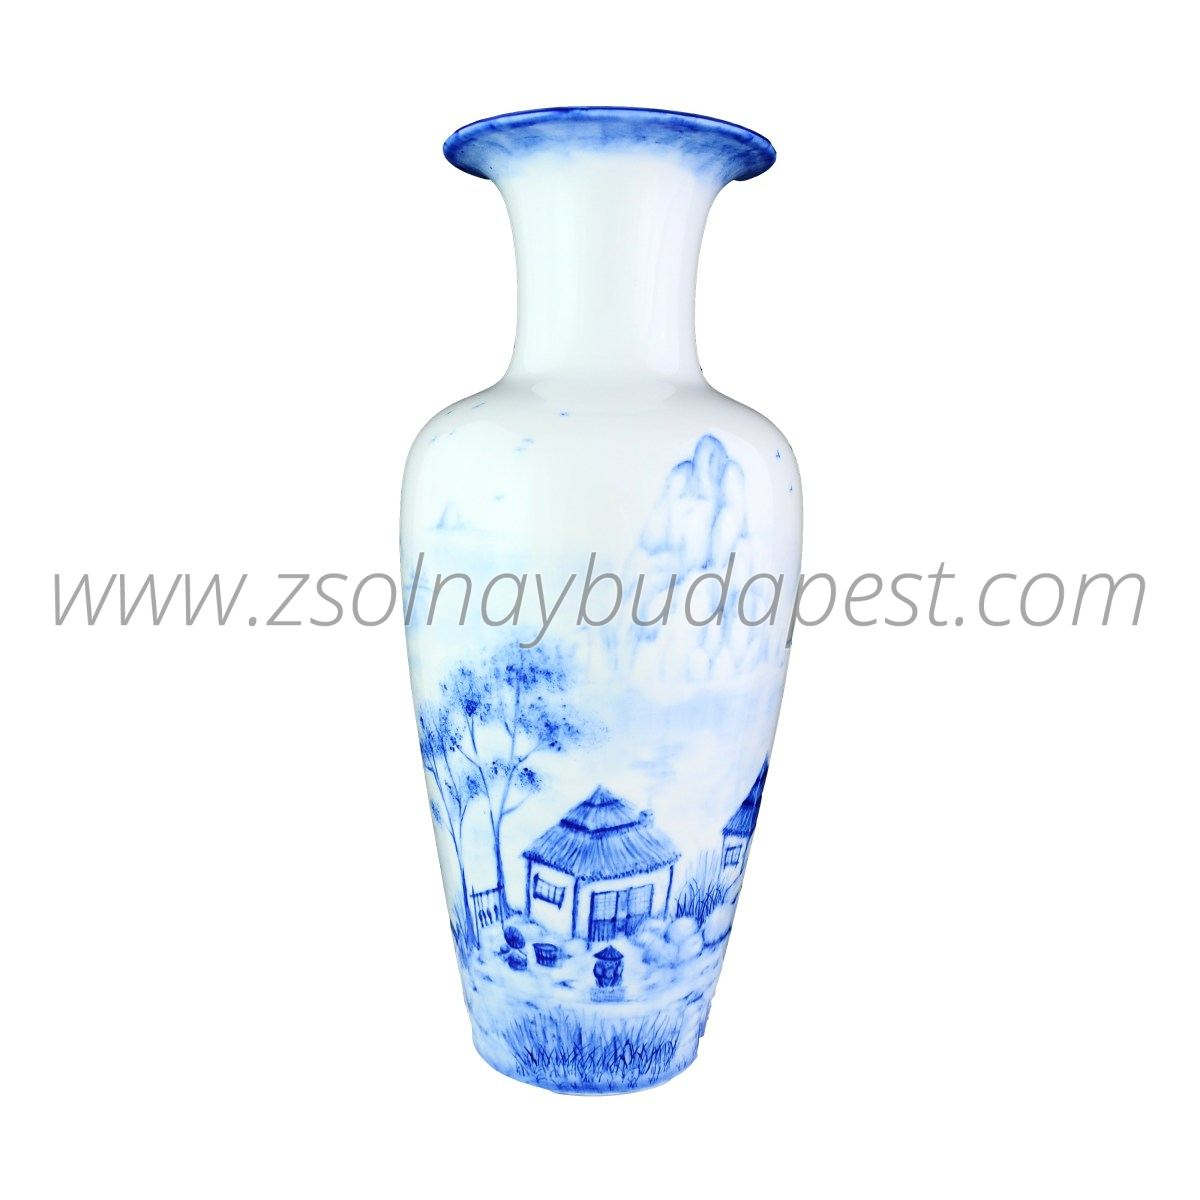 One of a kind Chinese style Vase